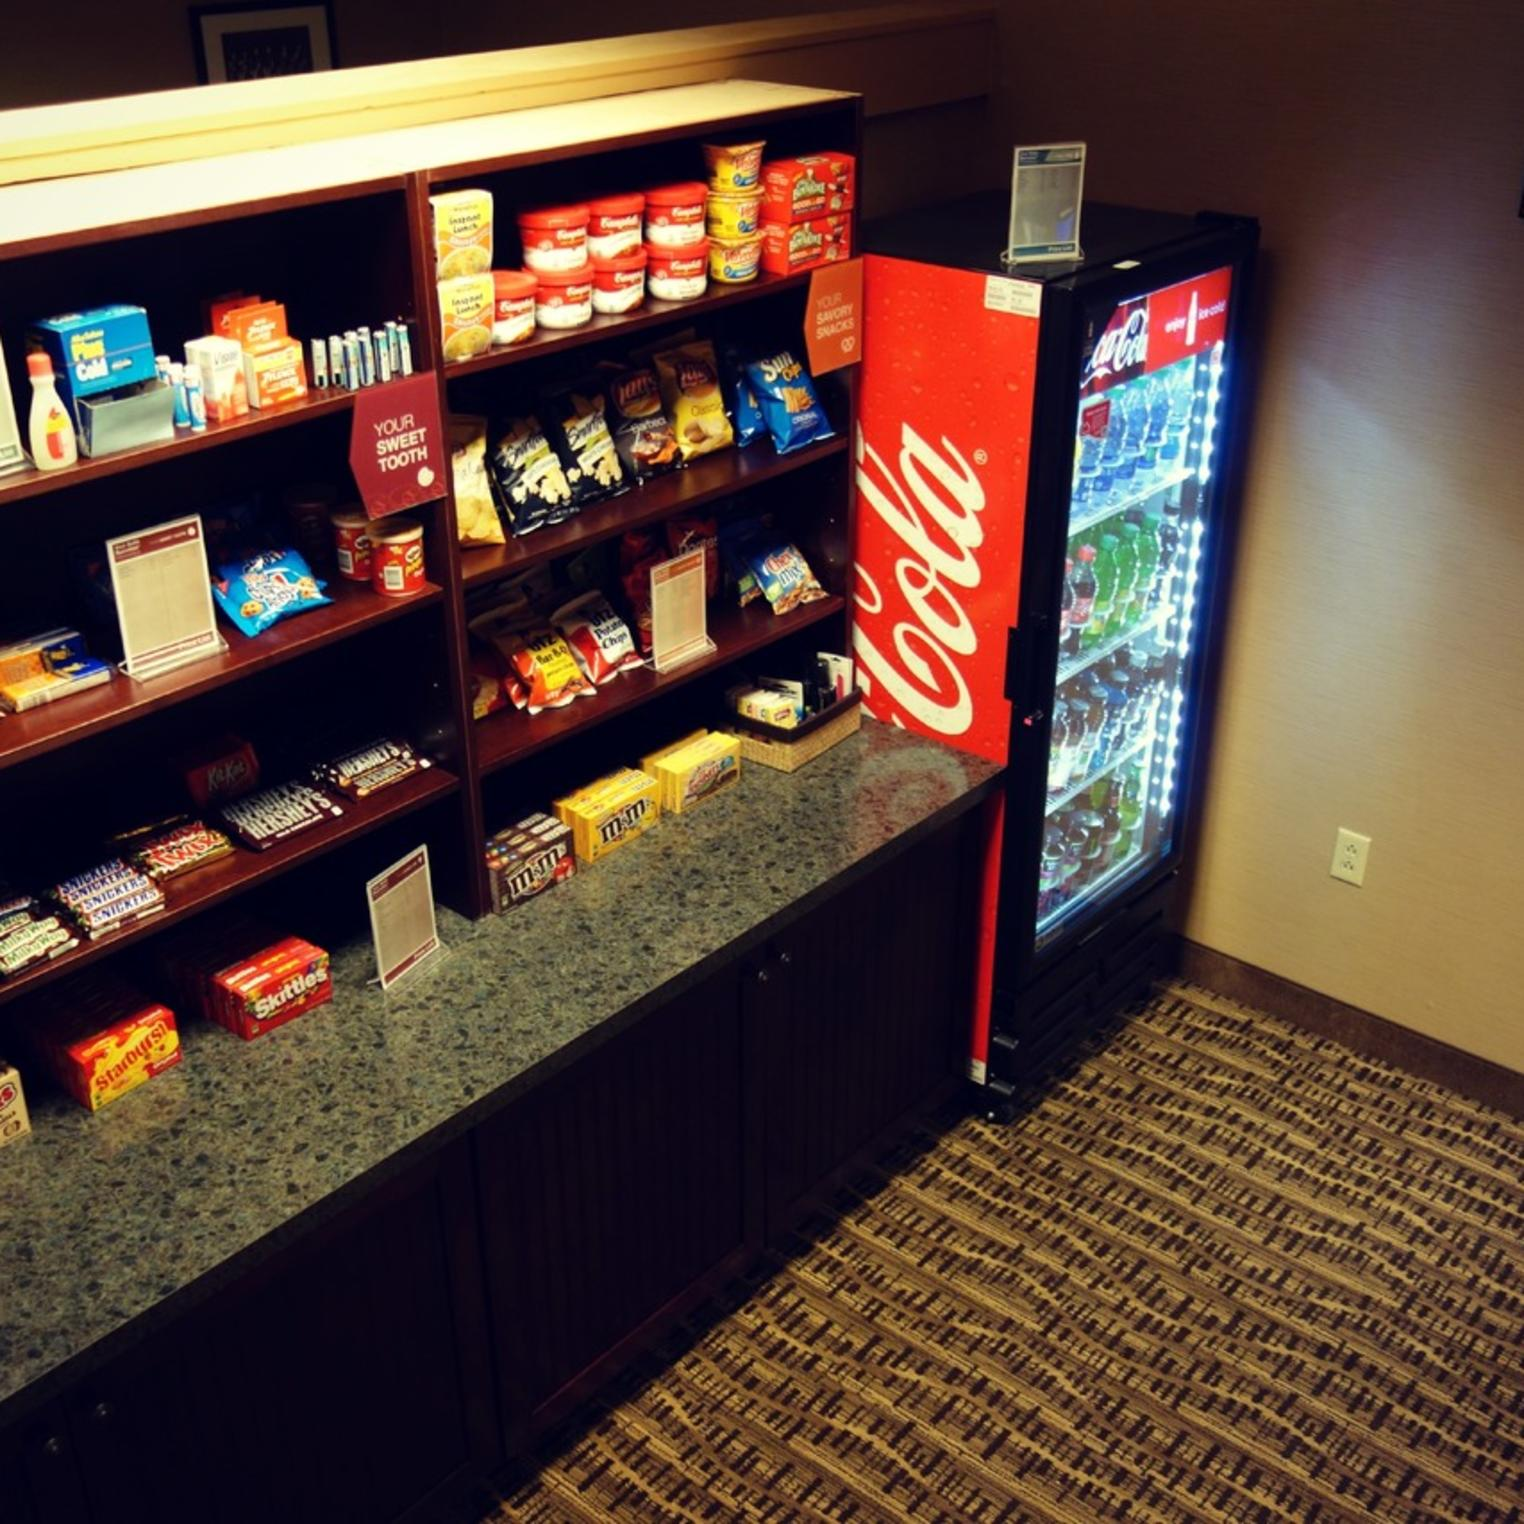 Our sundry shop has the essentials and a variety of snacks and beverages.